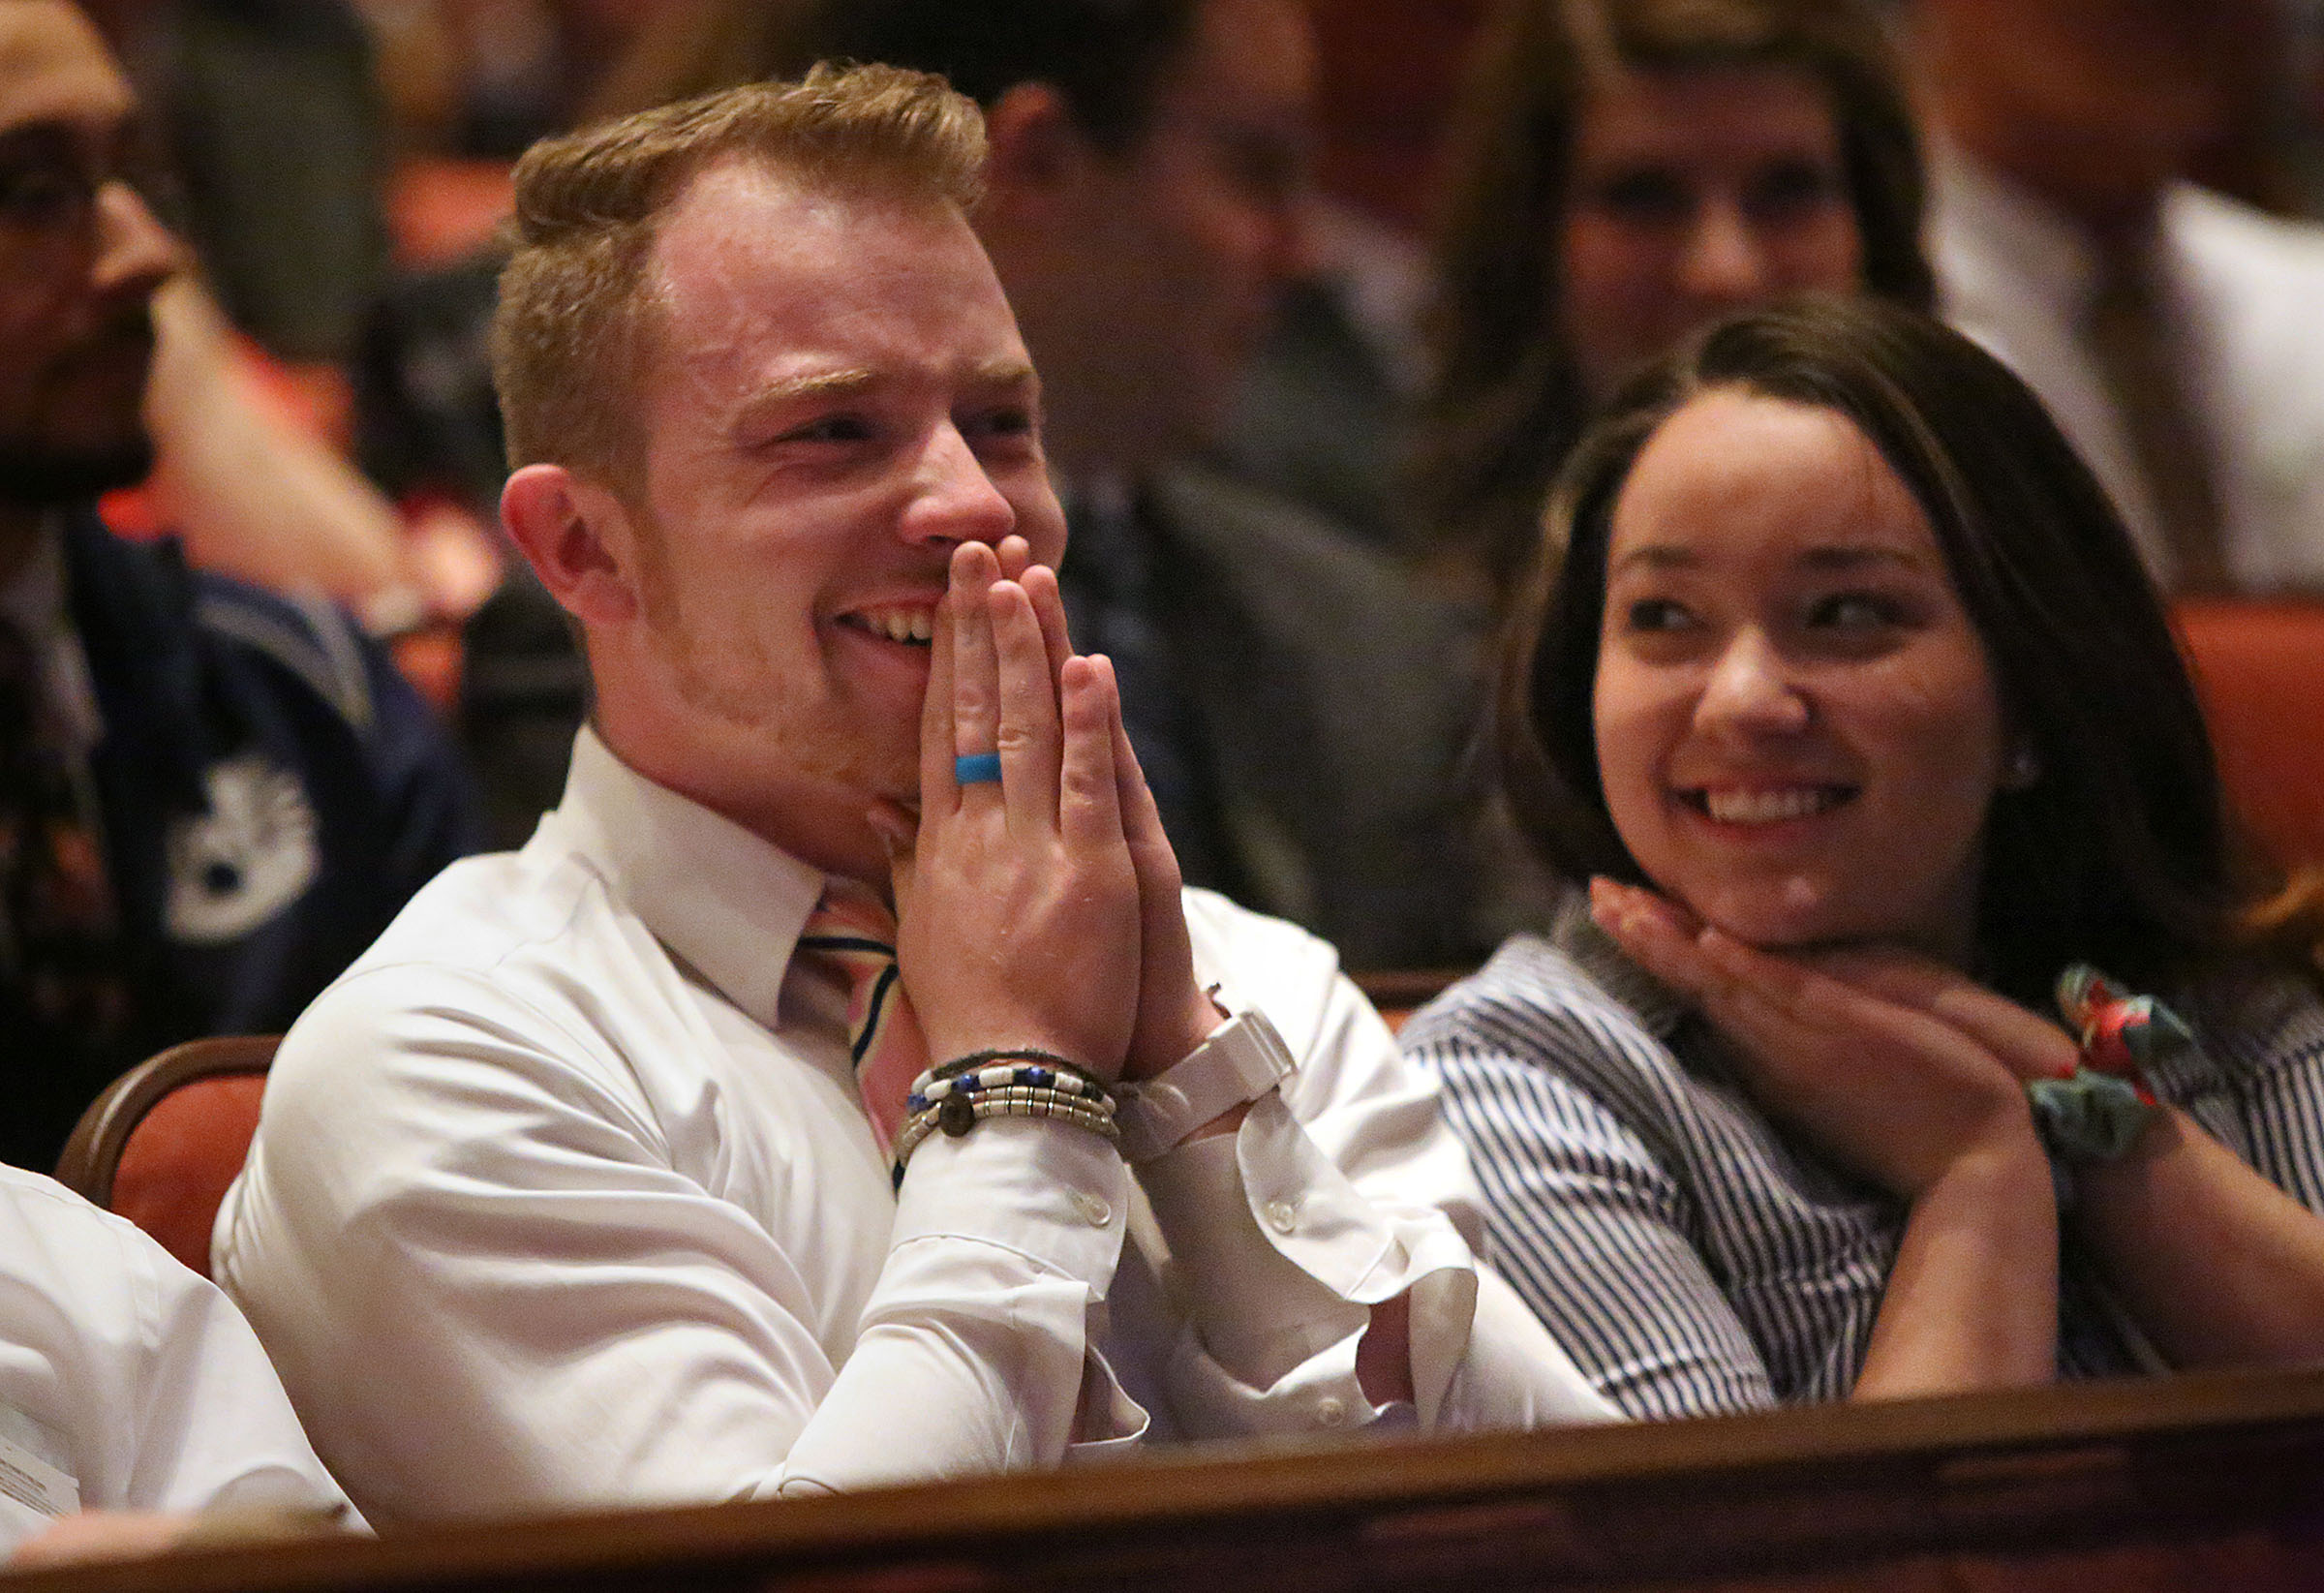 Peter Compton and Carolina Hashimoto react to LDS Church President Russell M. Nelson's announcement that there will be seven new temples around the world, including one in Layton, Utah, during the Sunday afternoon session of the 188th Annual General Conference of The Church of Jesus Christ of Latter-day Saints at the Conference Center in Salt Lake City on Sunday, April 1, 2018.